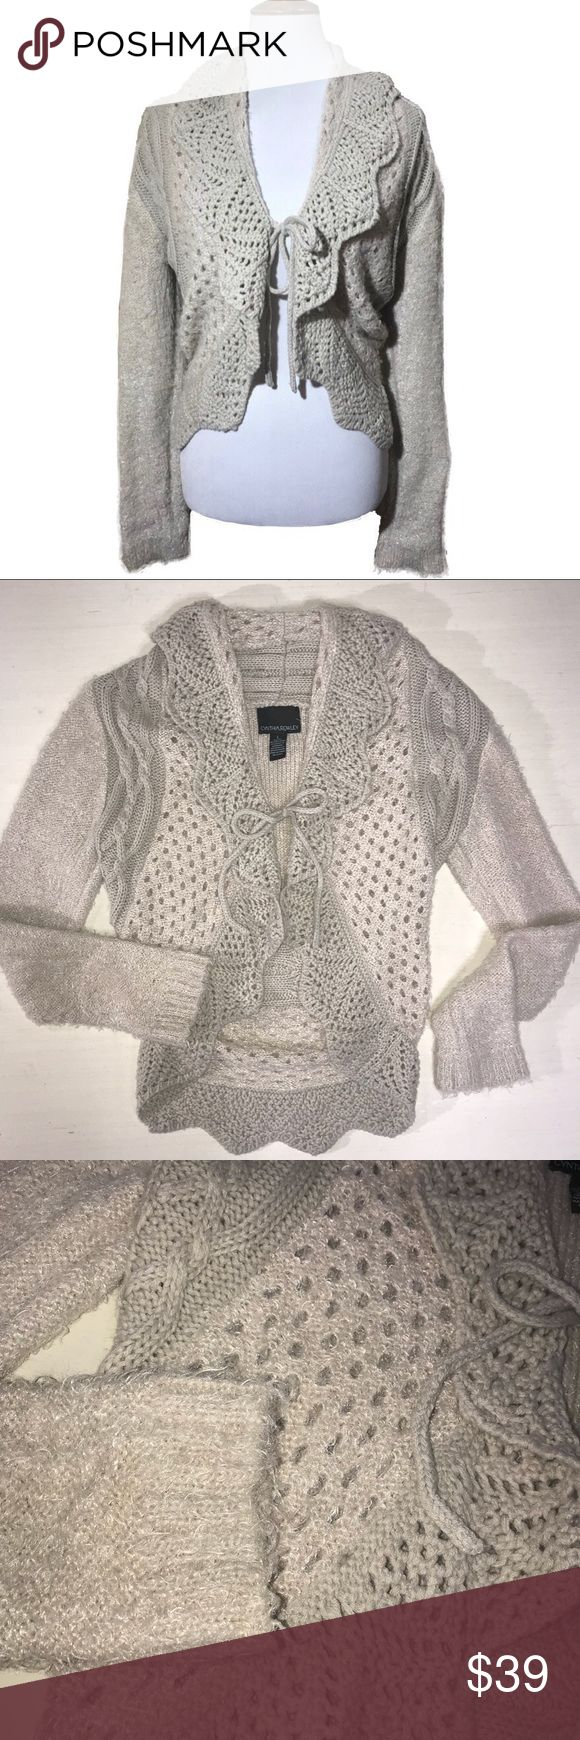 Cynthia Rowley Fuzzy Shrug Sweater Cynthia Rowley shrug sweater, fuzzy fabric in a creamy almond color with crochet knit trim, large foldover collar, string tie. Great condition (factory fuzzing). Cynthia Rowley Sweaters Cardigans